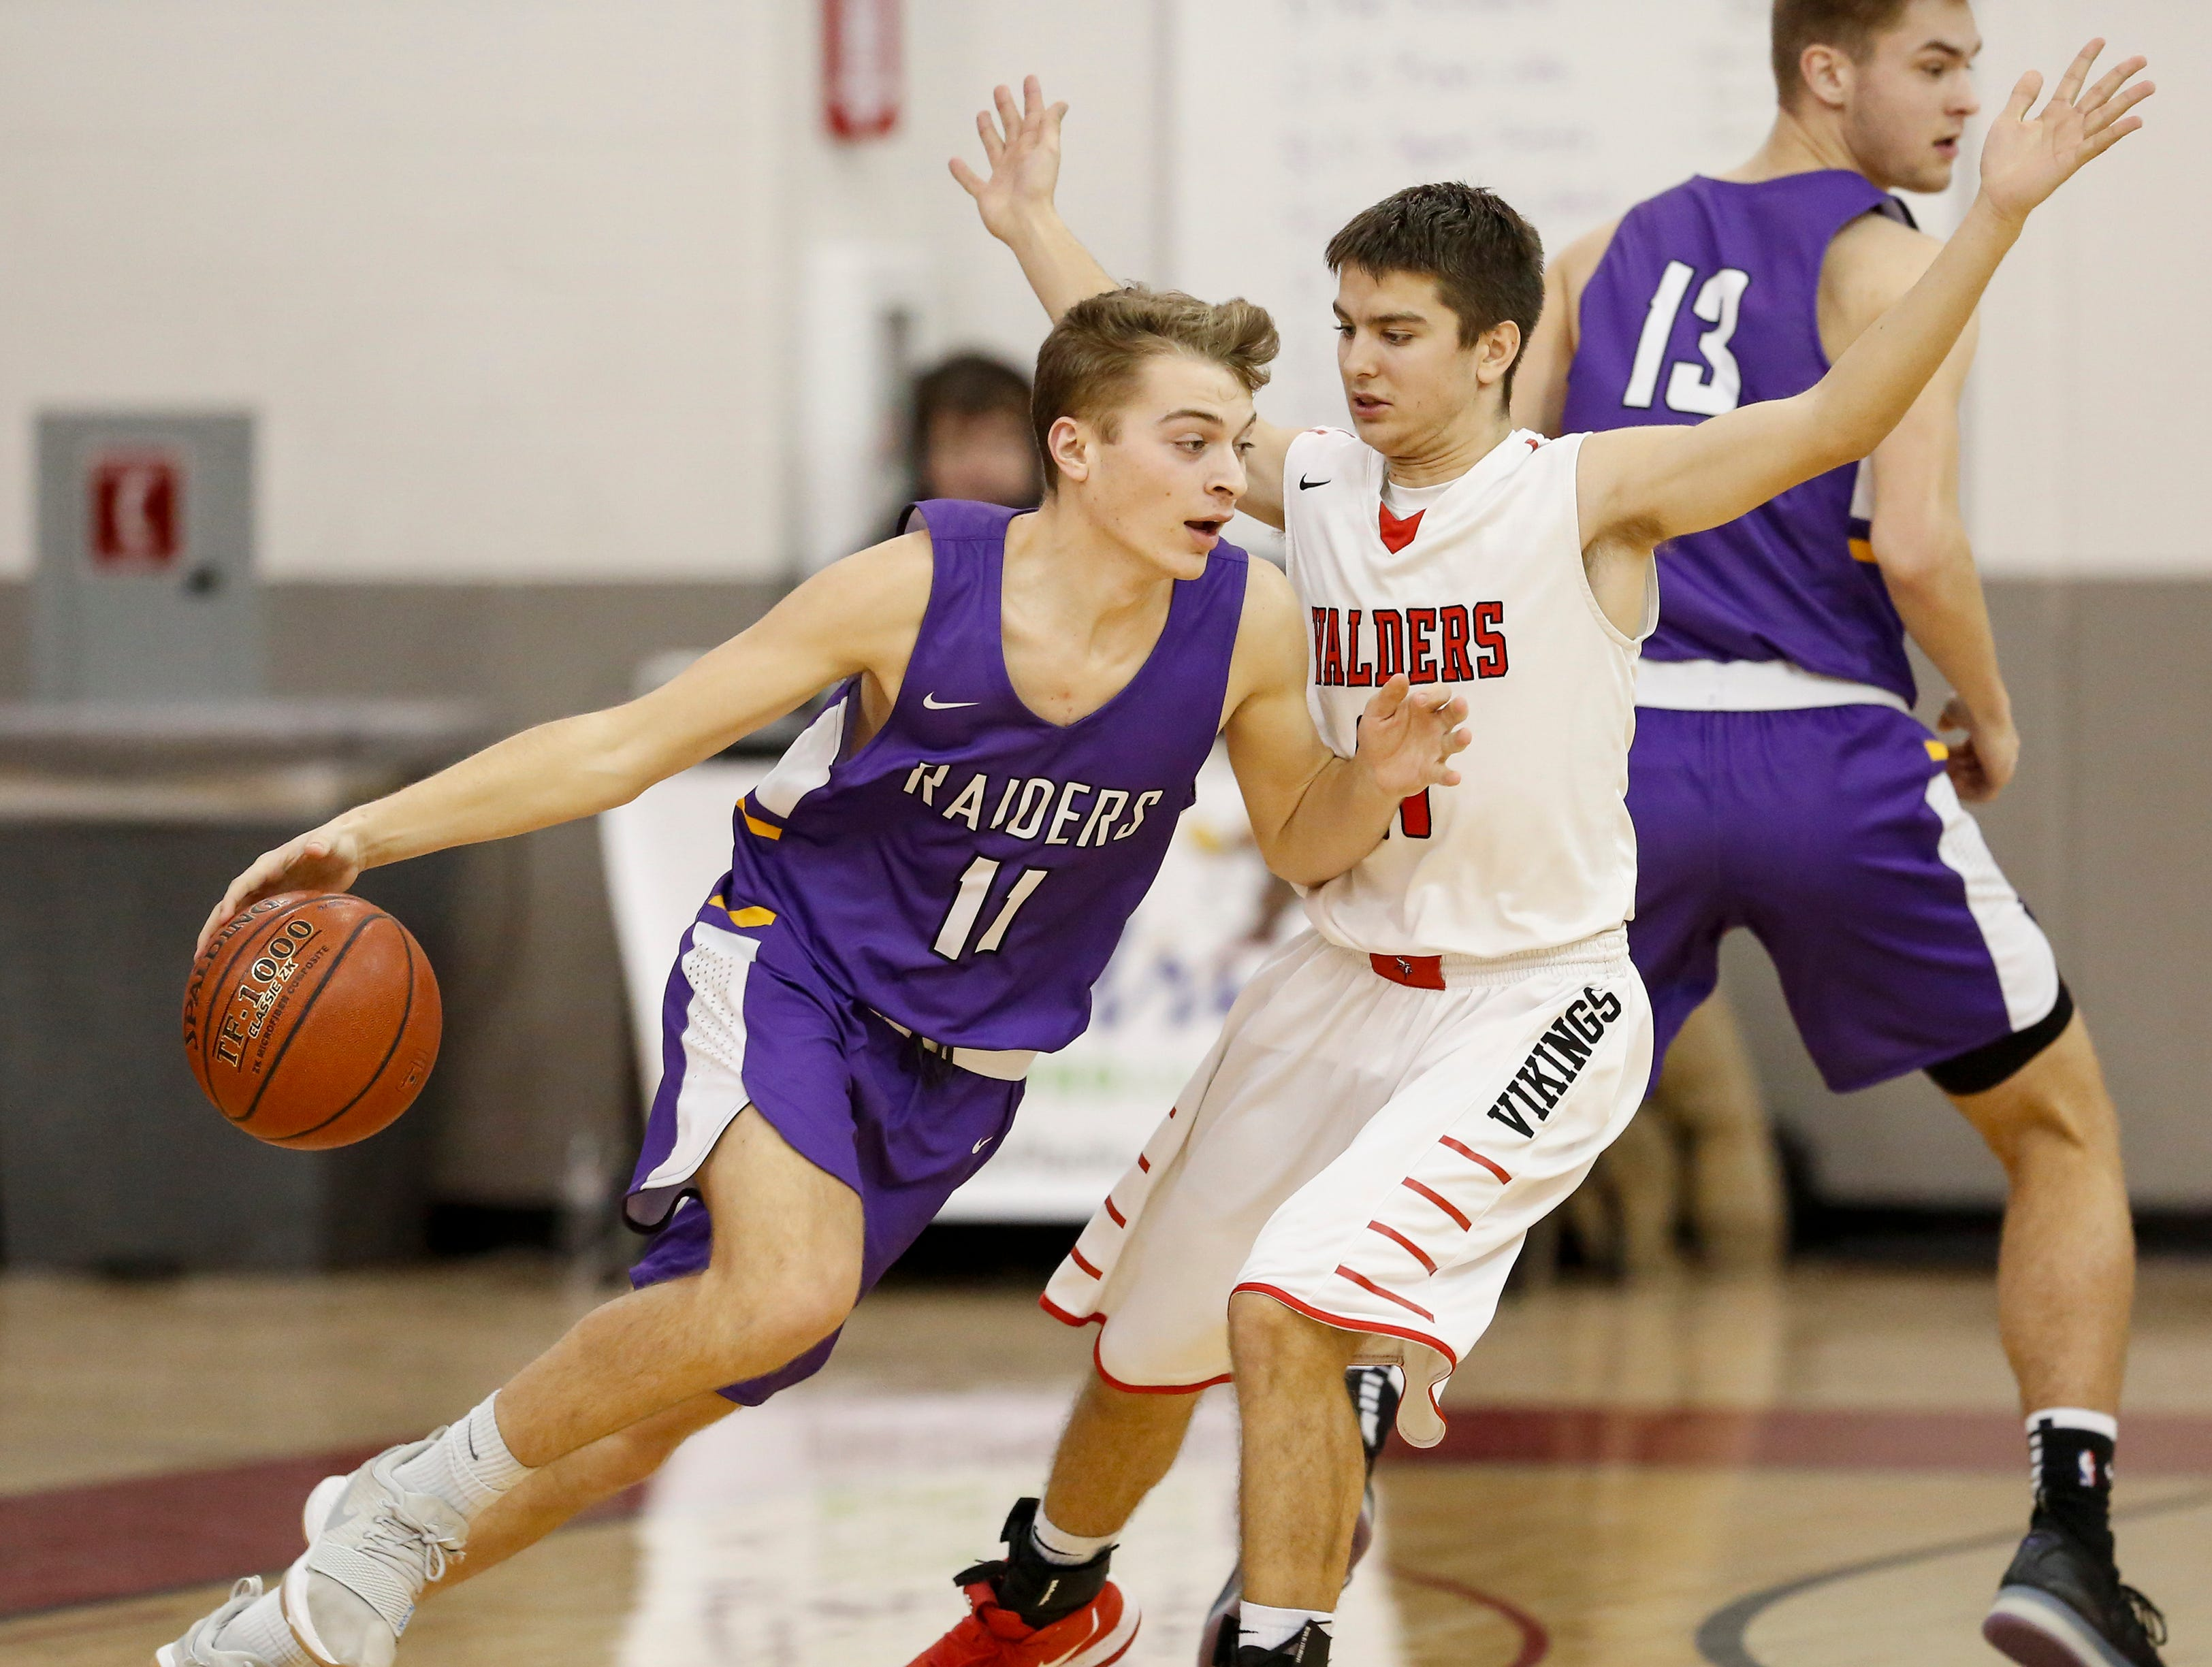 Two Rivers' Alexander Klein (11) drives past Valders' Riley Hammel (11) at Valders High School Thursday, January 24, 2019, in Valders, Wis. Joshua Clark/USA TODAY NETWORK-Wisconsin